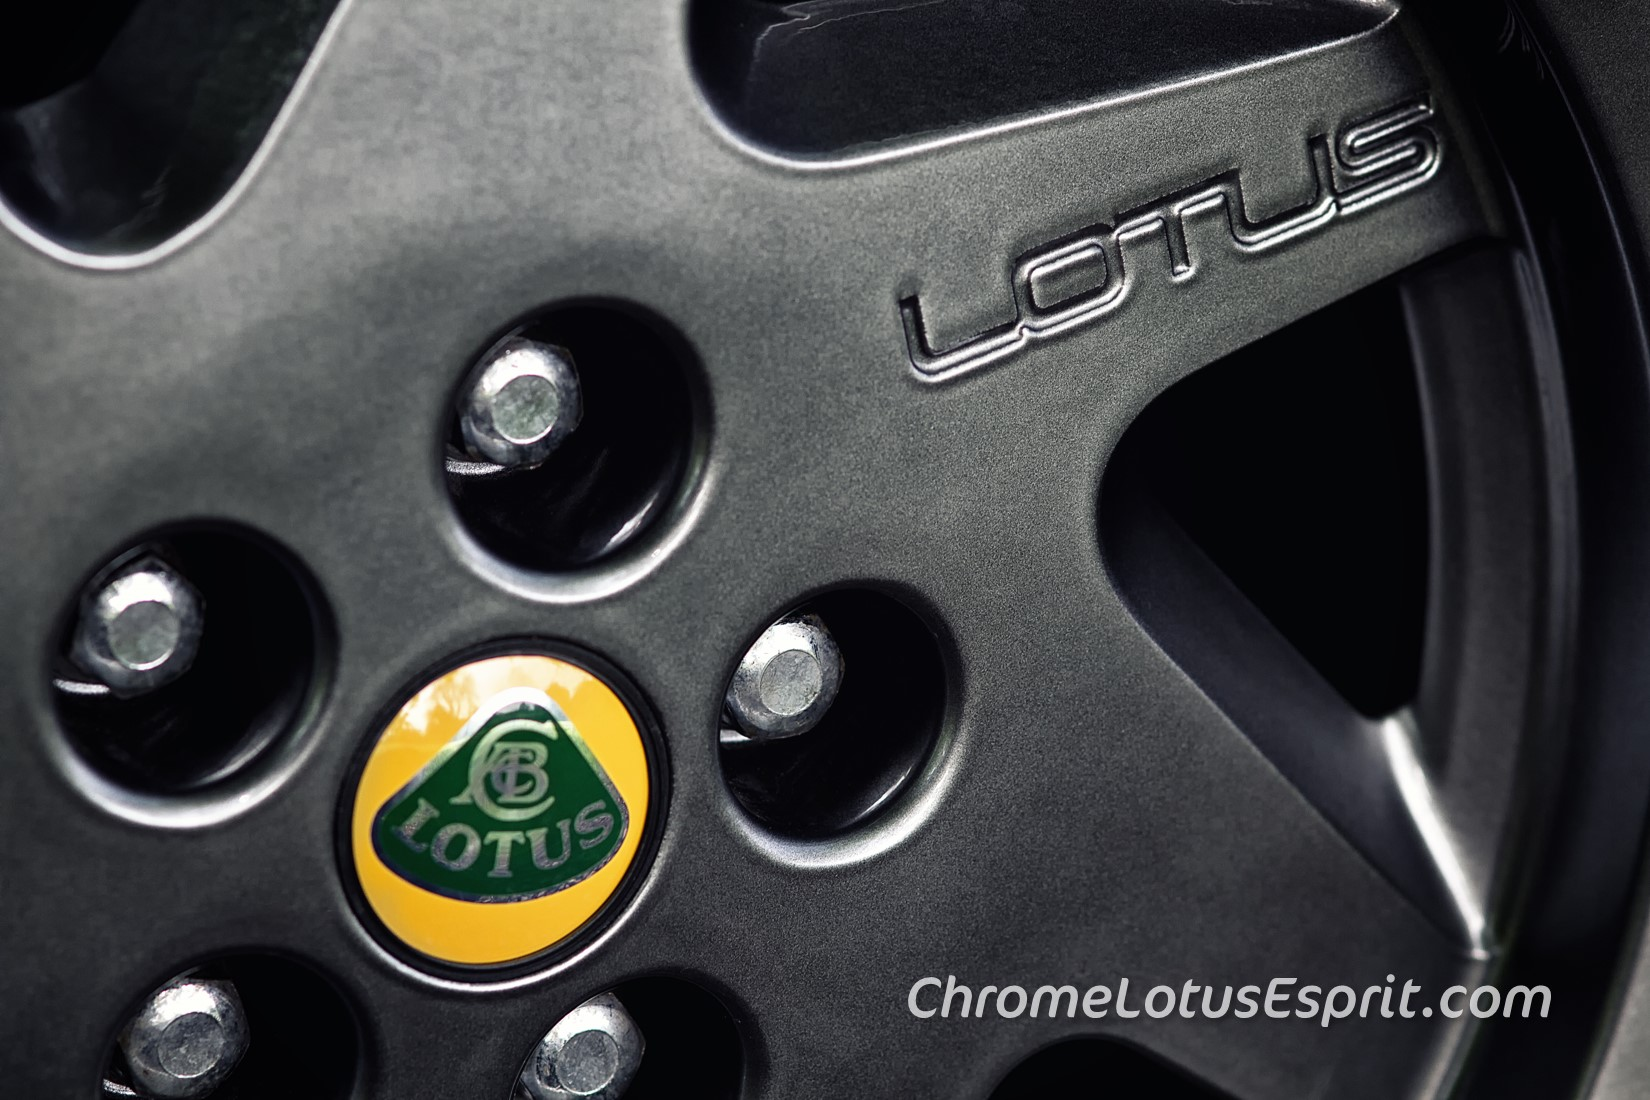 Chrome-Lotus-Esprit-for-sale-11